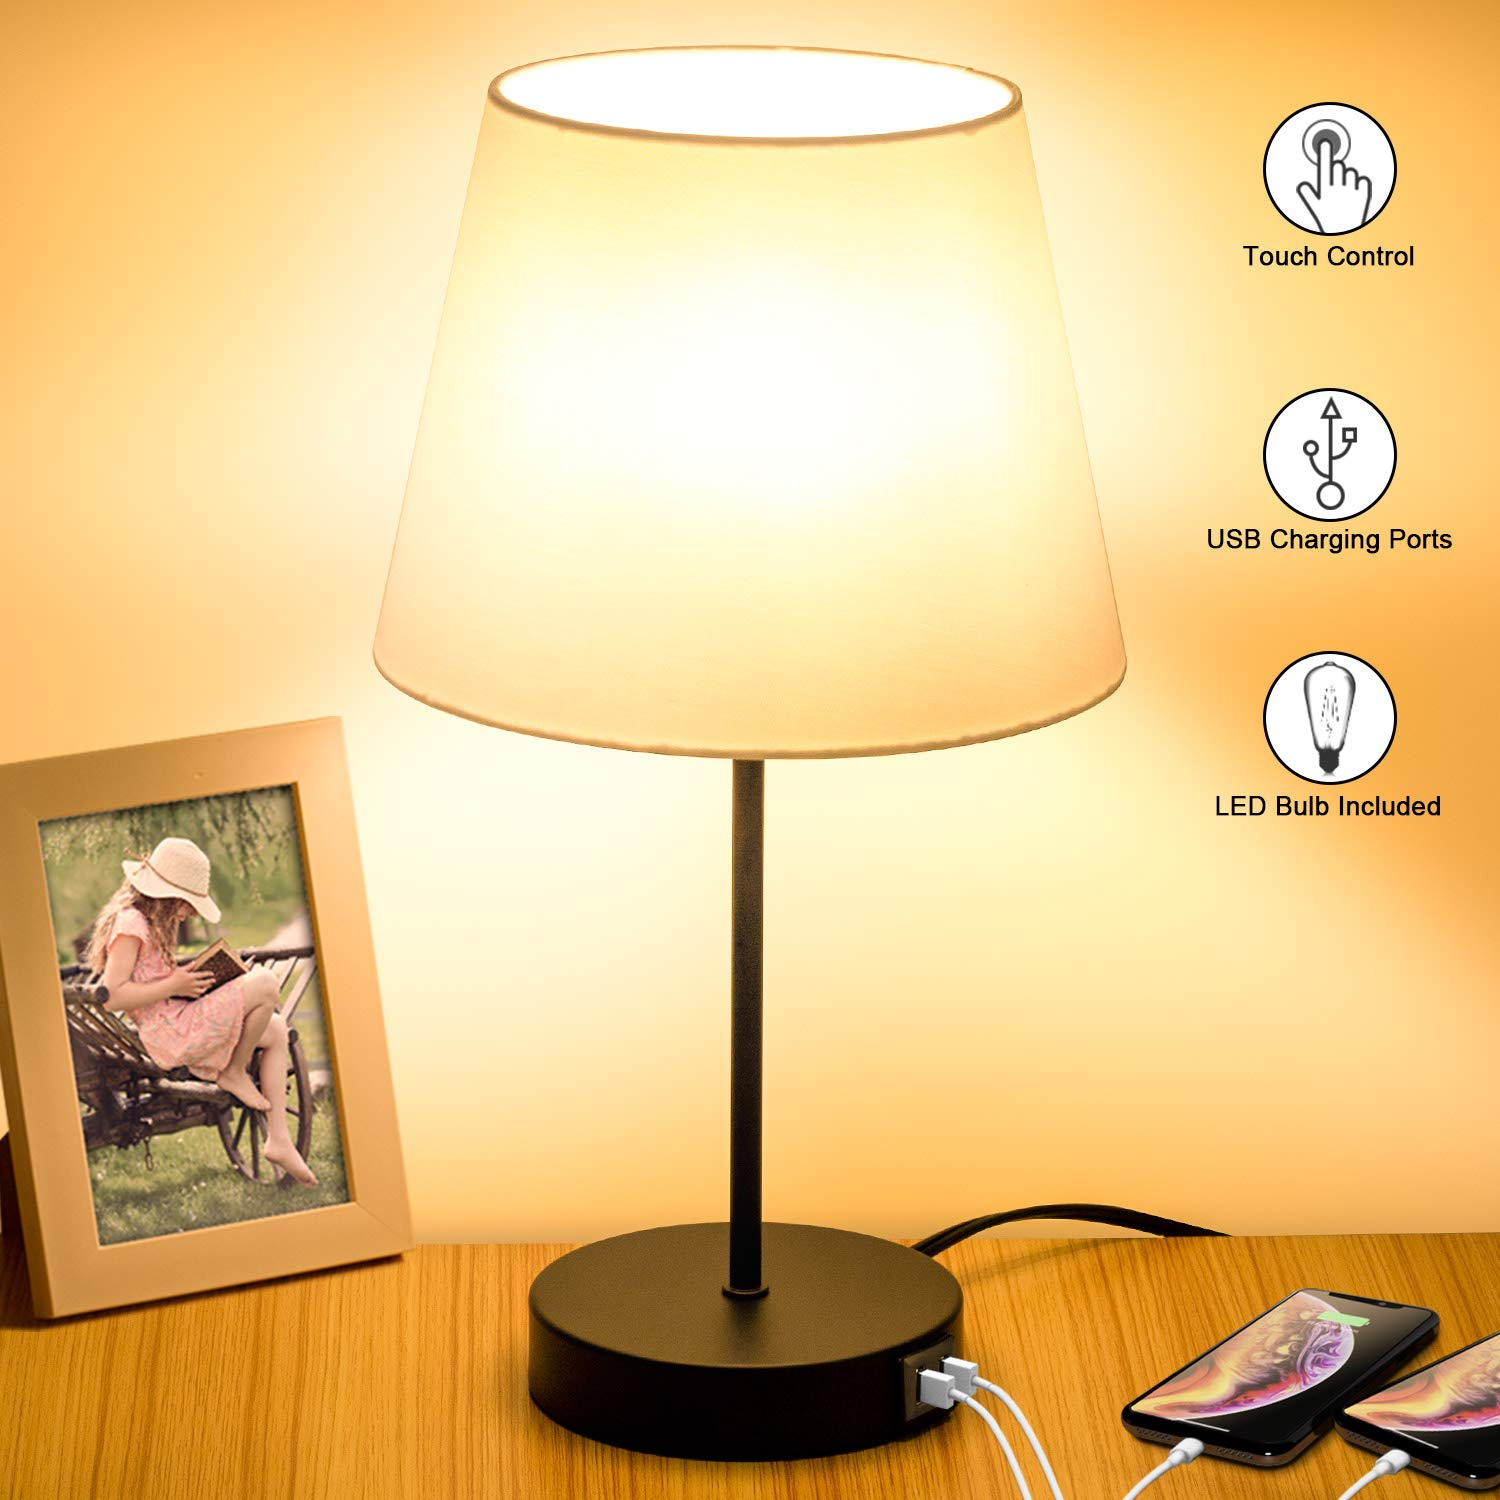 Touch Control Table Lamp, 2 USB Charging Ports, 3 Way Dimmable Bedside Nightstand Lamp, Fabric Shade Modern Desk Reading Lamp for Bedroom Living Room Dorm 6W 2700K E26 LED Edison Bulb Included